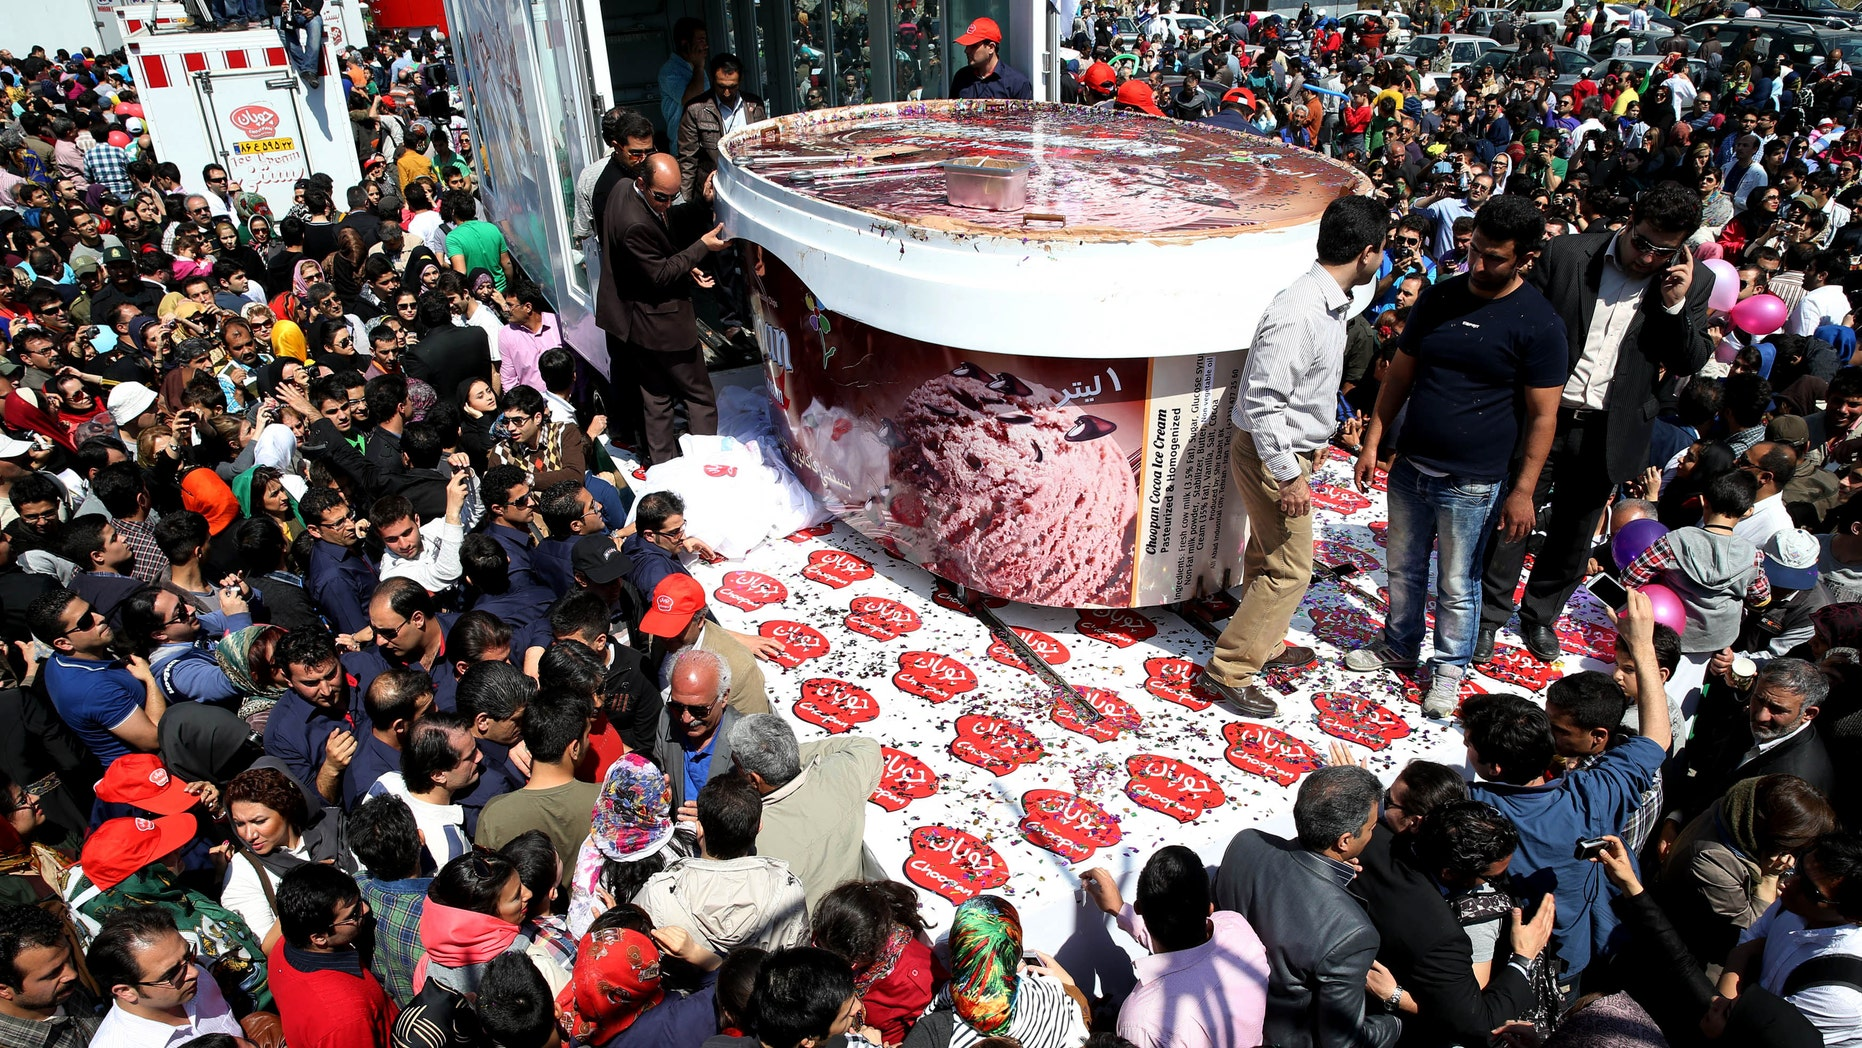 5-tons of ice-cream made by Iranian Choopan dairy is displayed during a ceremony at the Tochal mountainous area of northern Tehran, Iran.